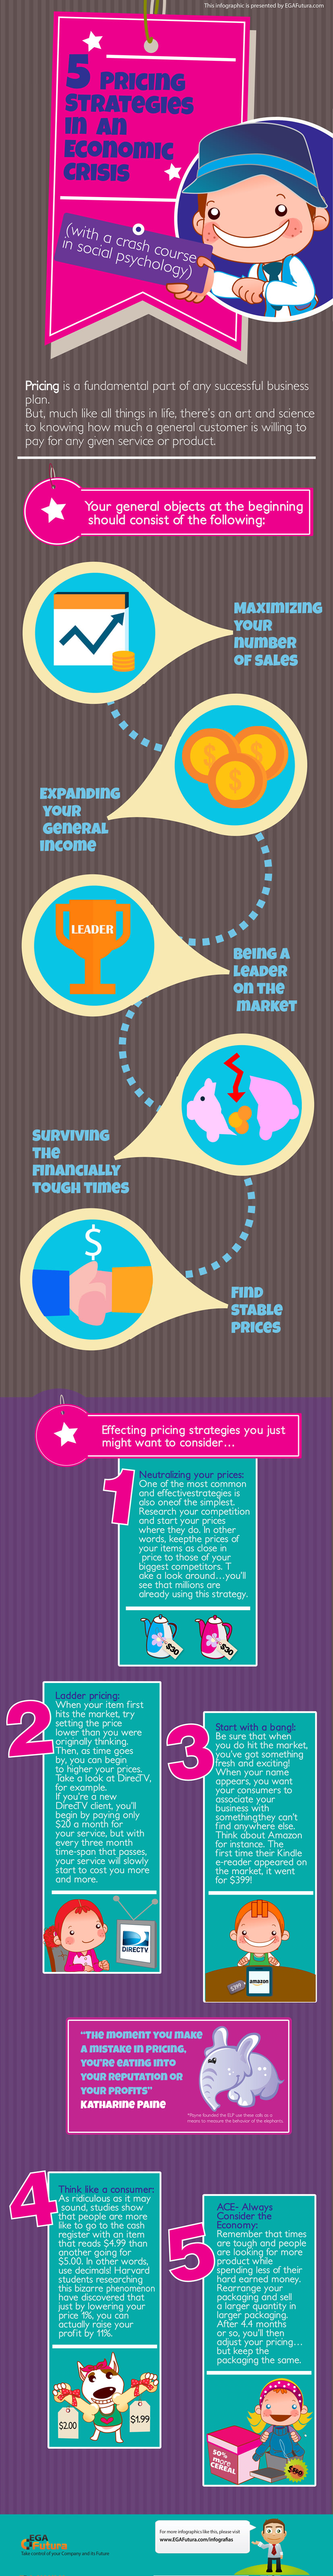 5 Pricing Strategies in an Economic Crisis (with a crash course in social psychology)